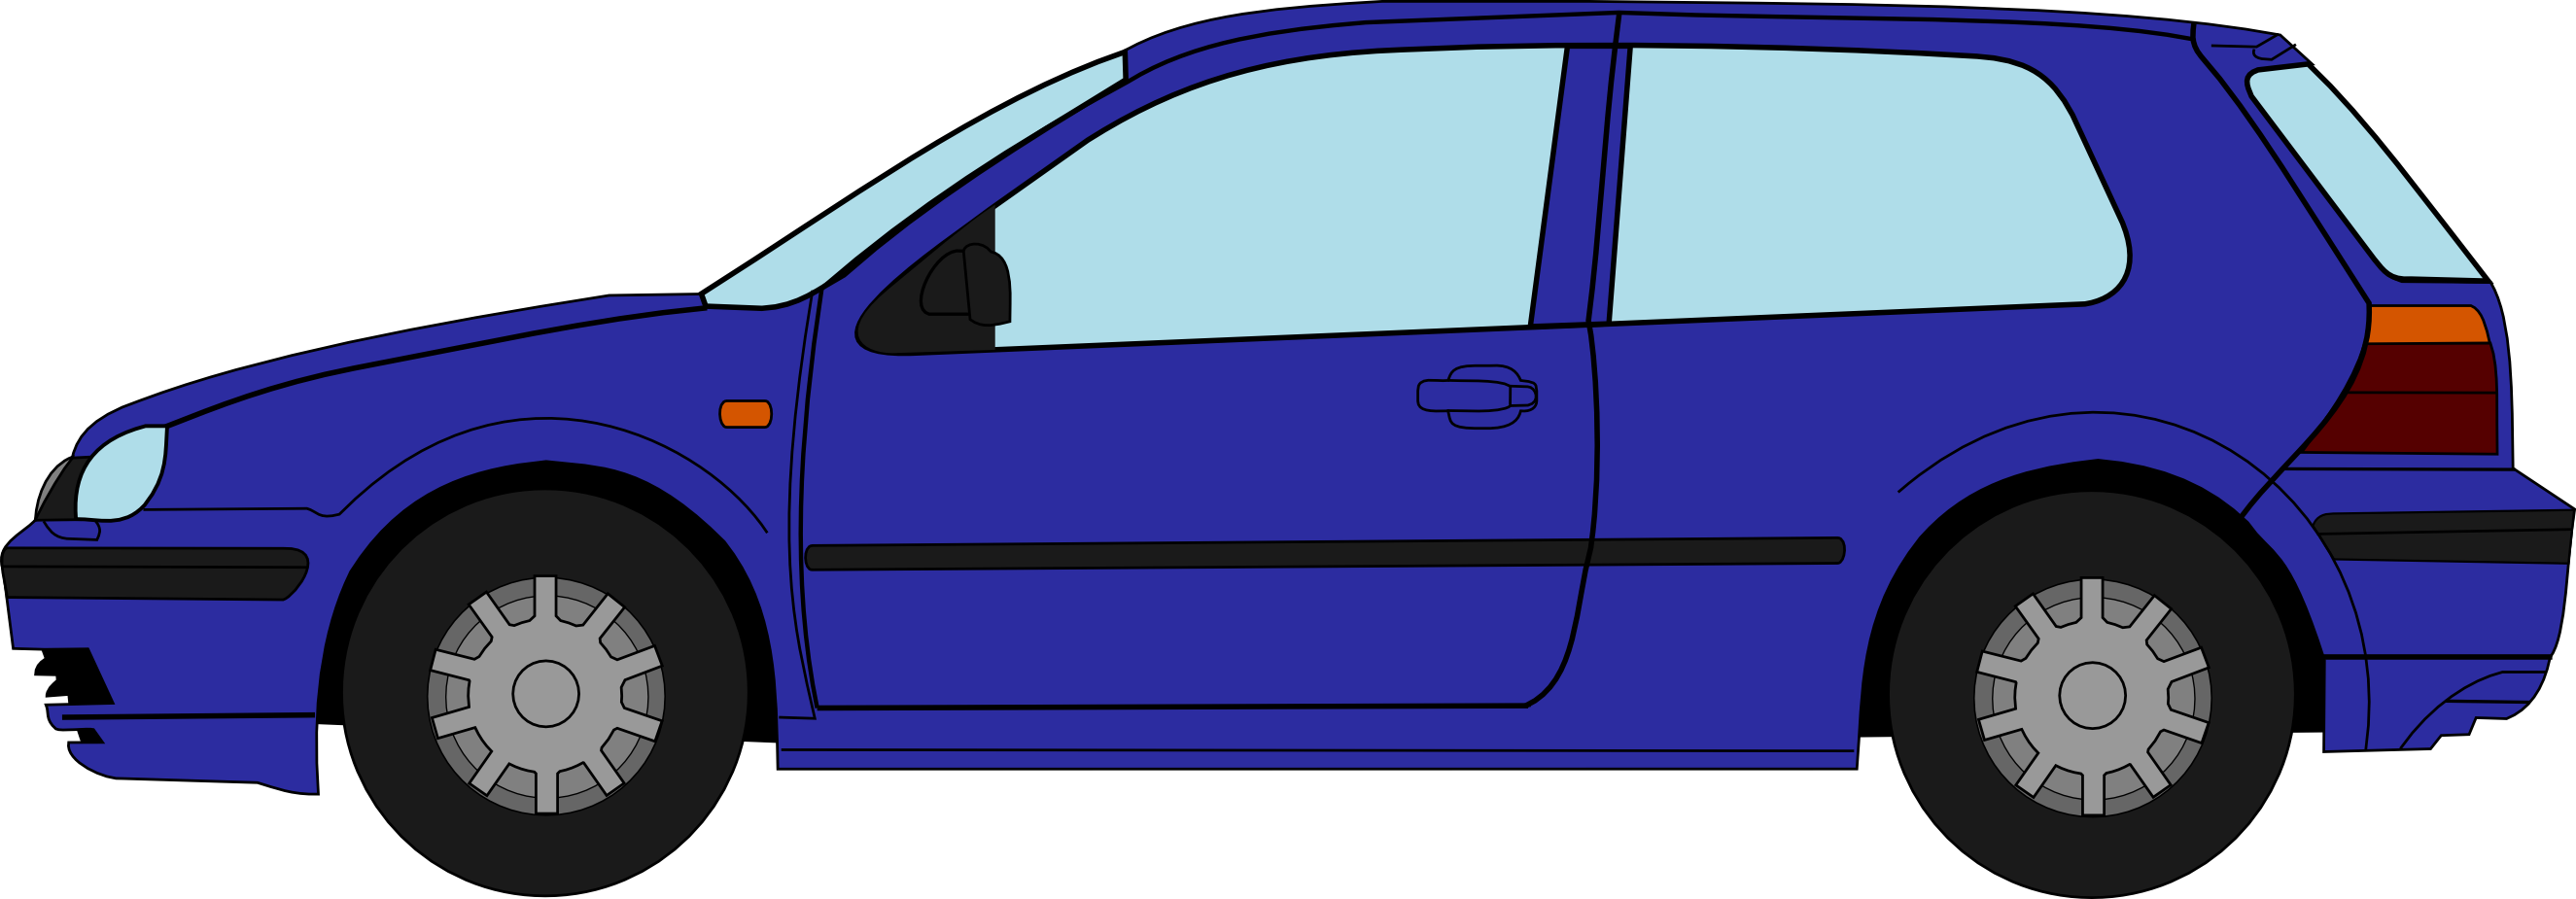 Collection of golf. Volkswagen drawing vw polo banner